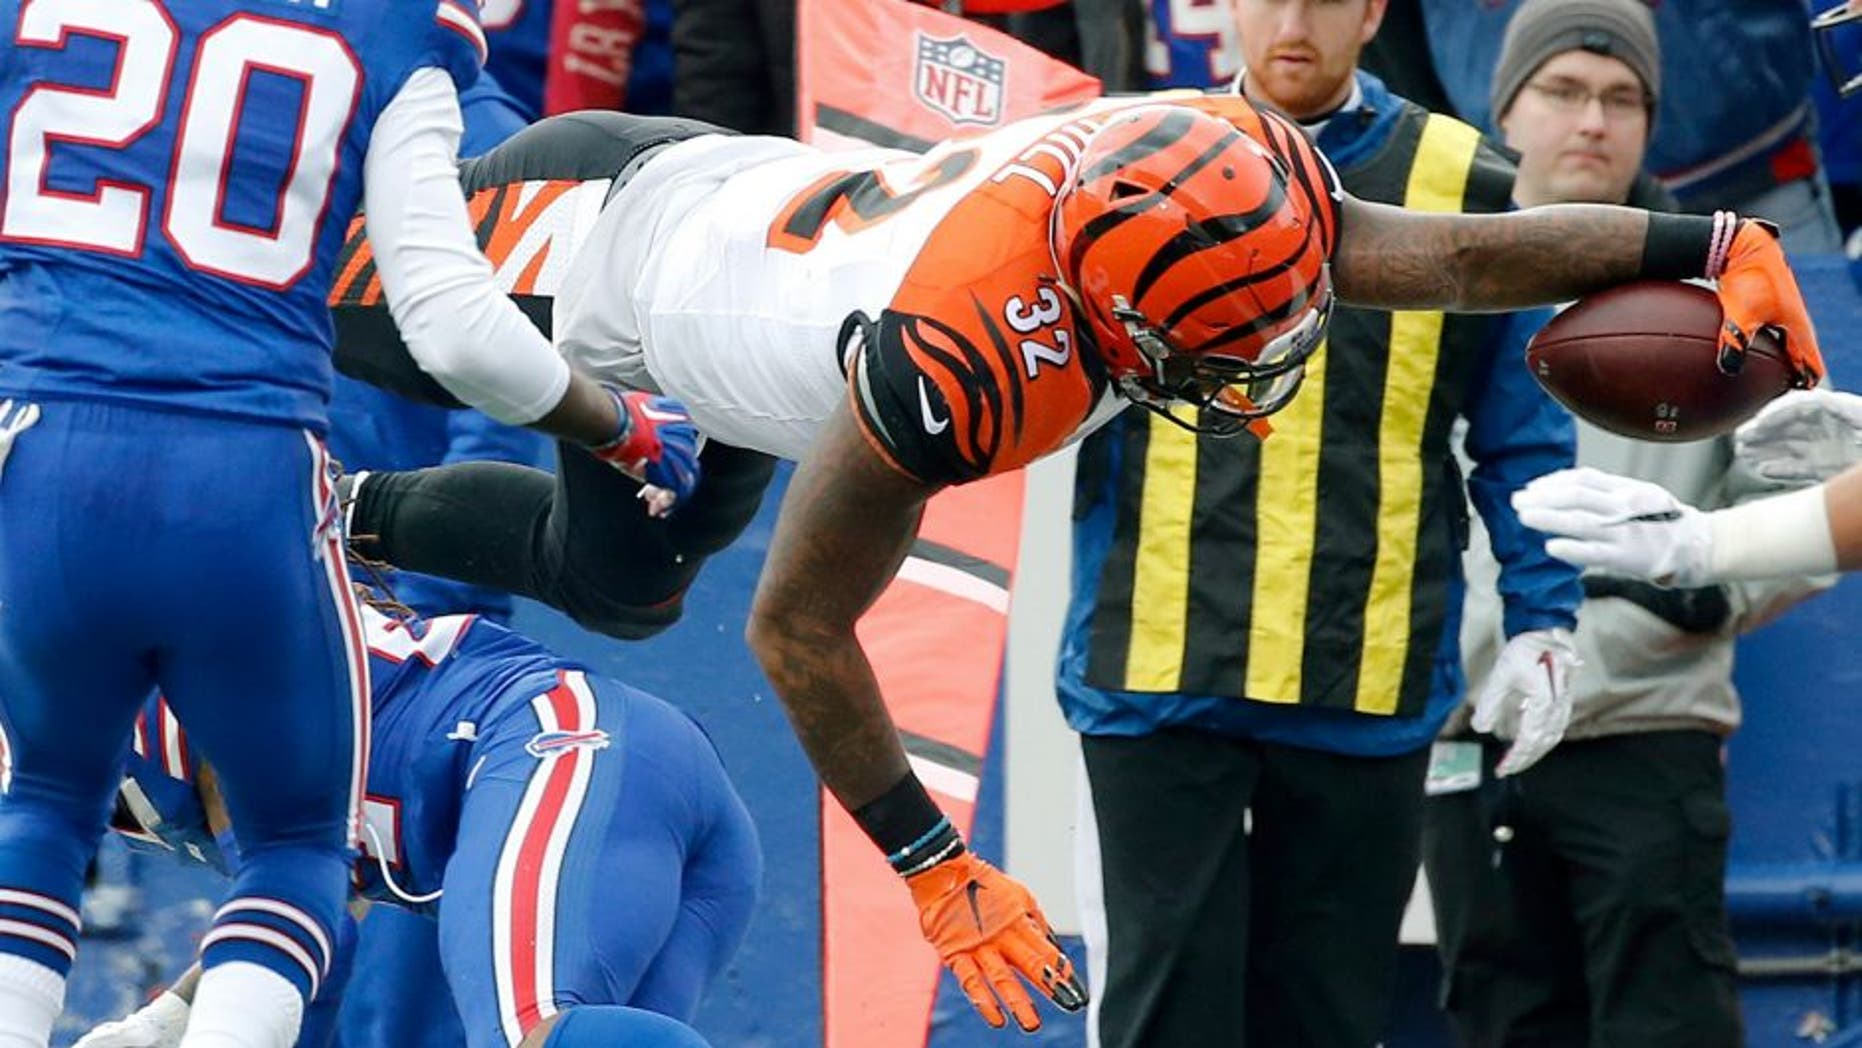 Cincinnati Bengals running back Jeremy Hill (32) dives past Buffalo Bills defenders for a touchdown during the first half of an NFL football game on Sunday, Oct. 18, 2015, in Orchard Park, N.Y. (AP Photo/Bill Wippert)